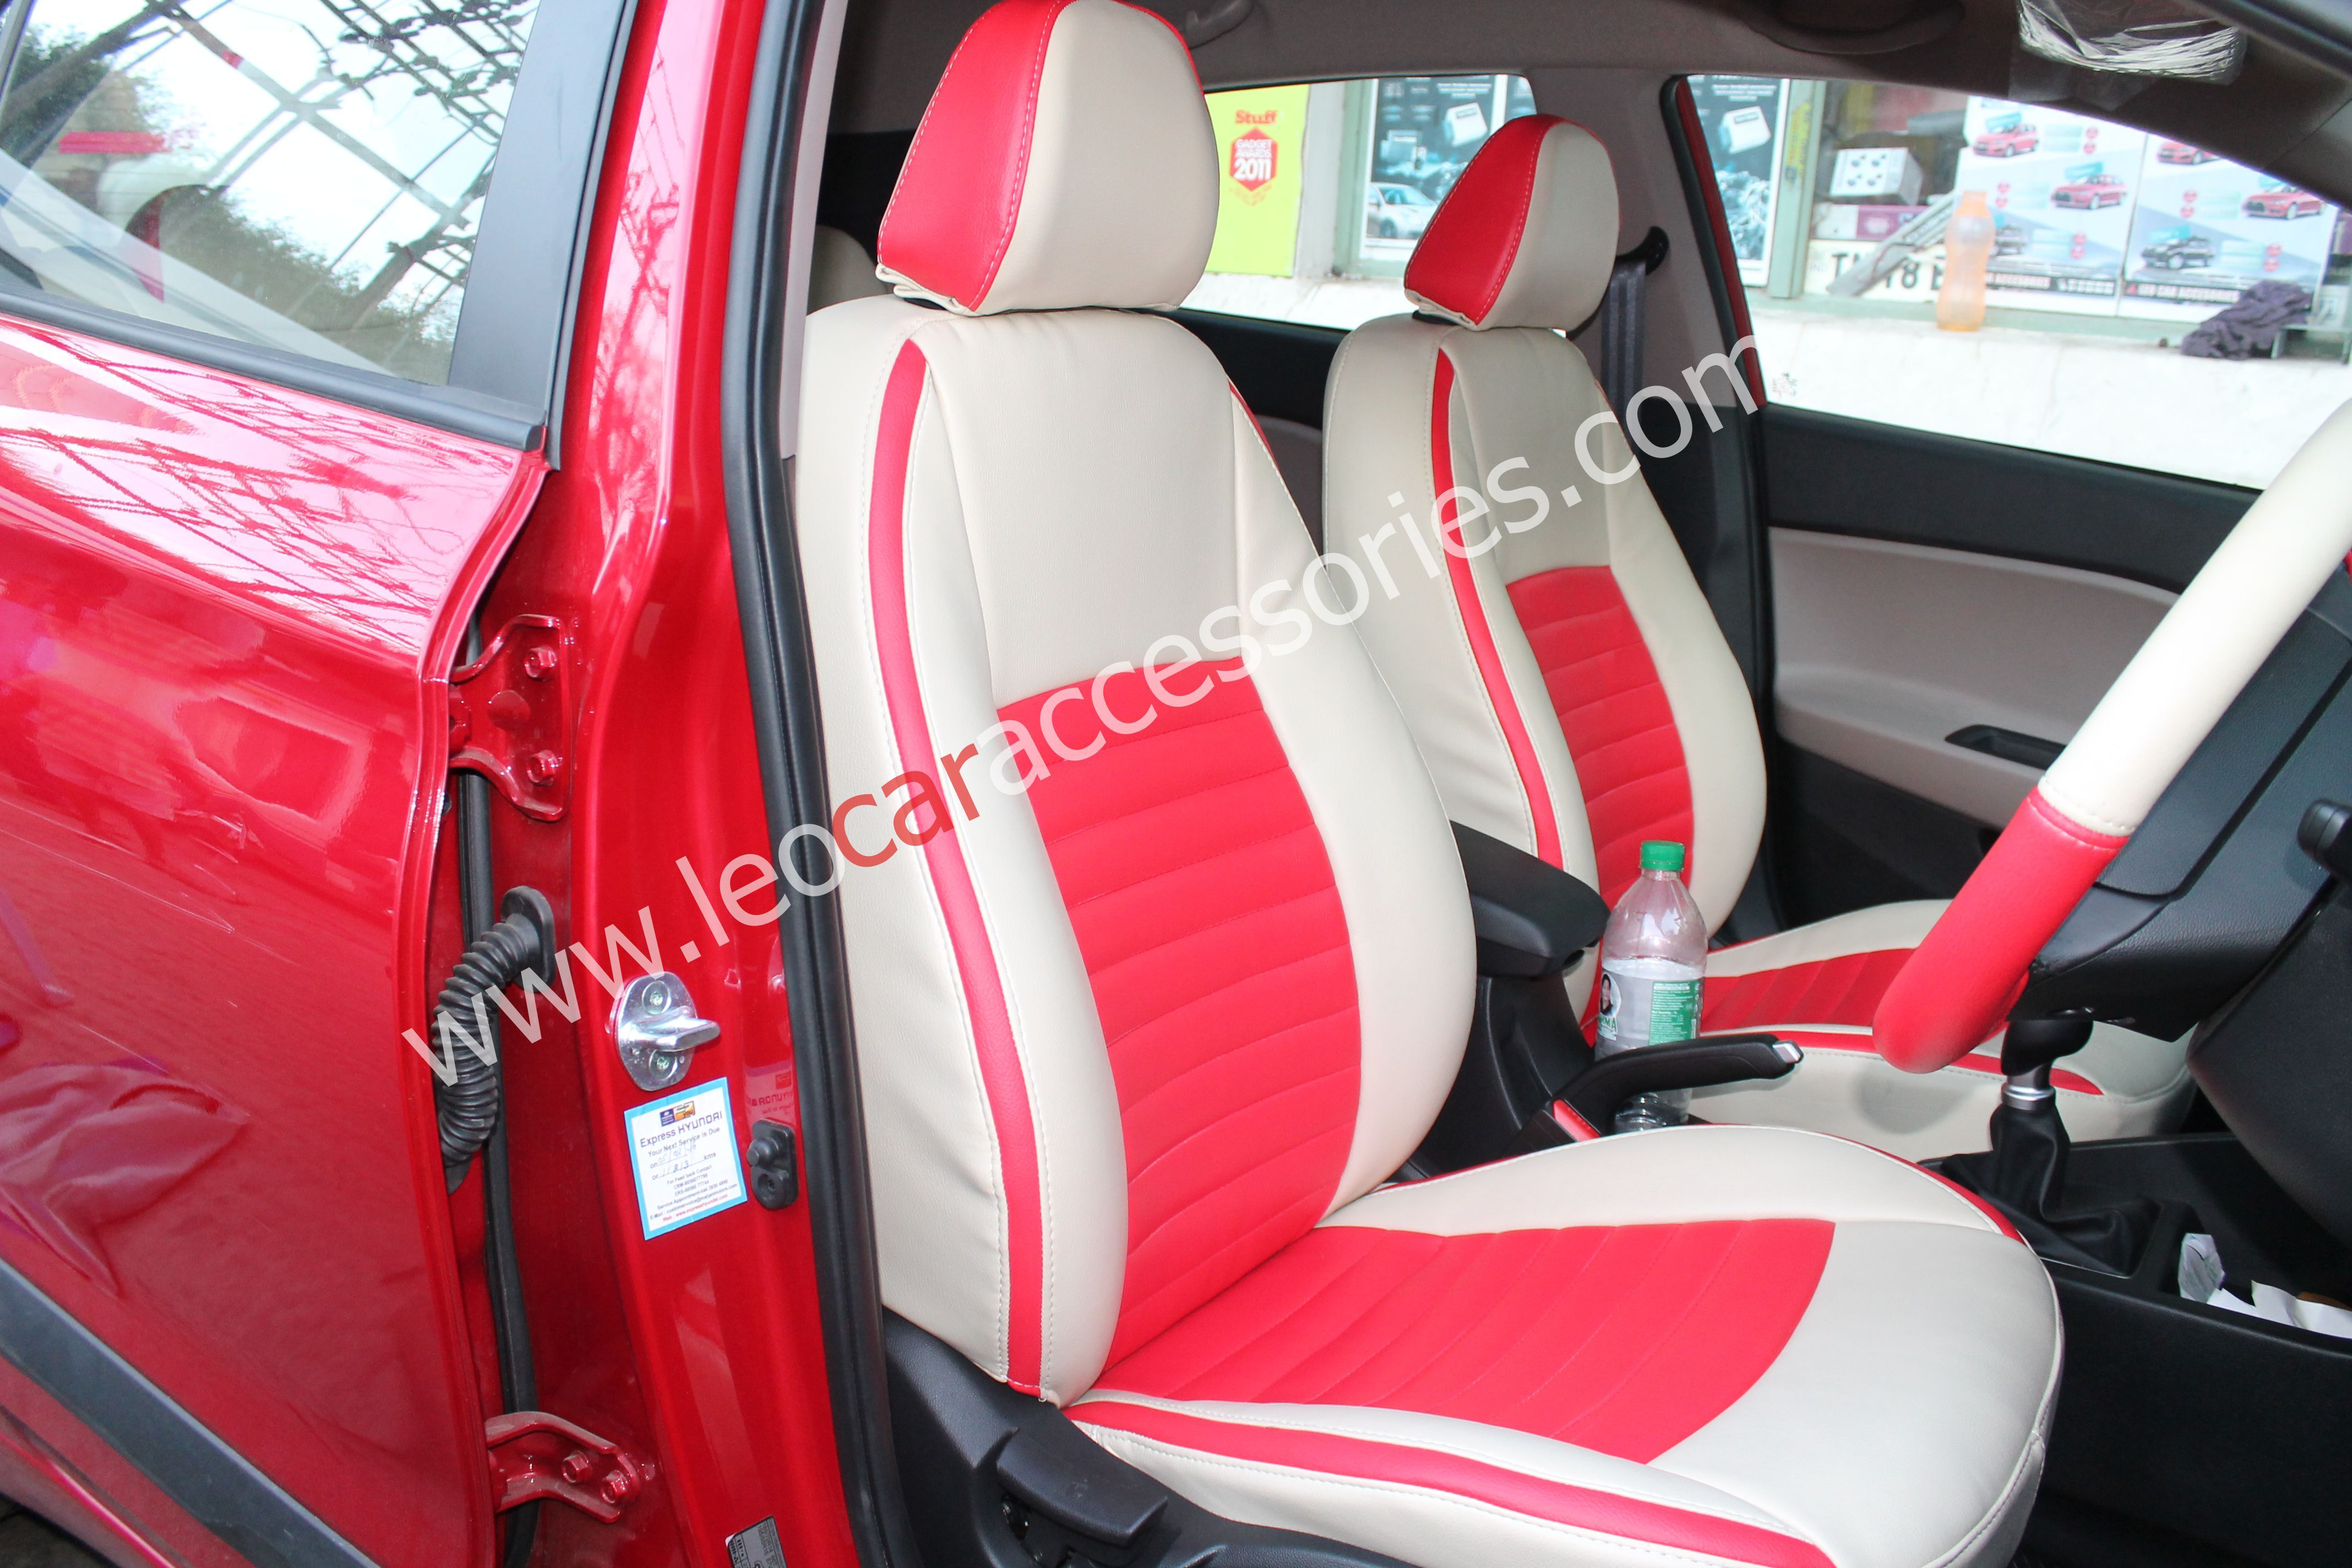 CAR SEAT COVERS fit Hyundai i20 red//black sport style full set